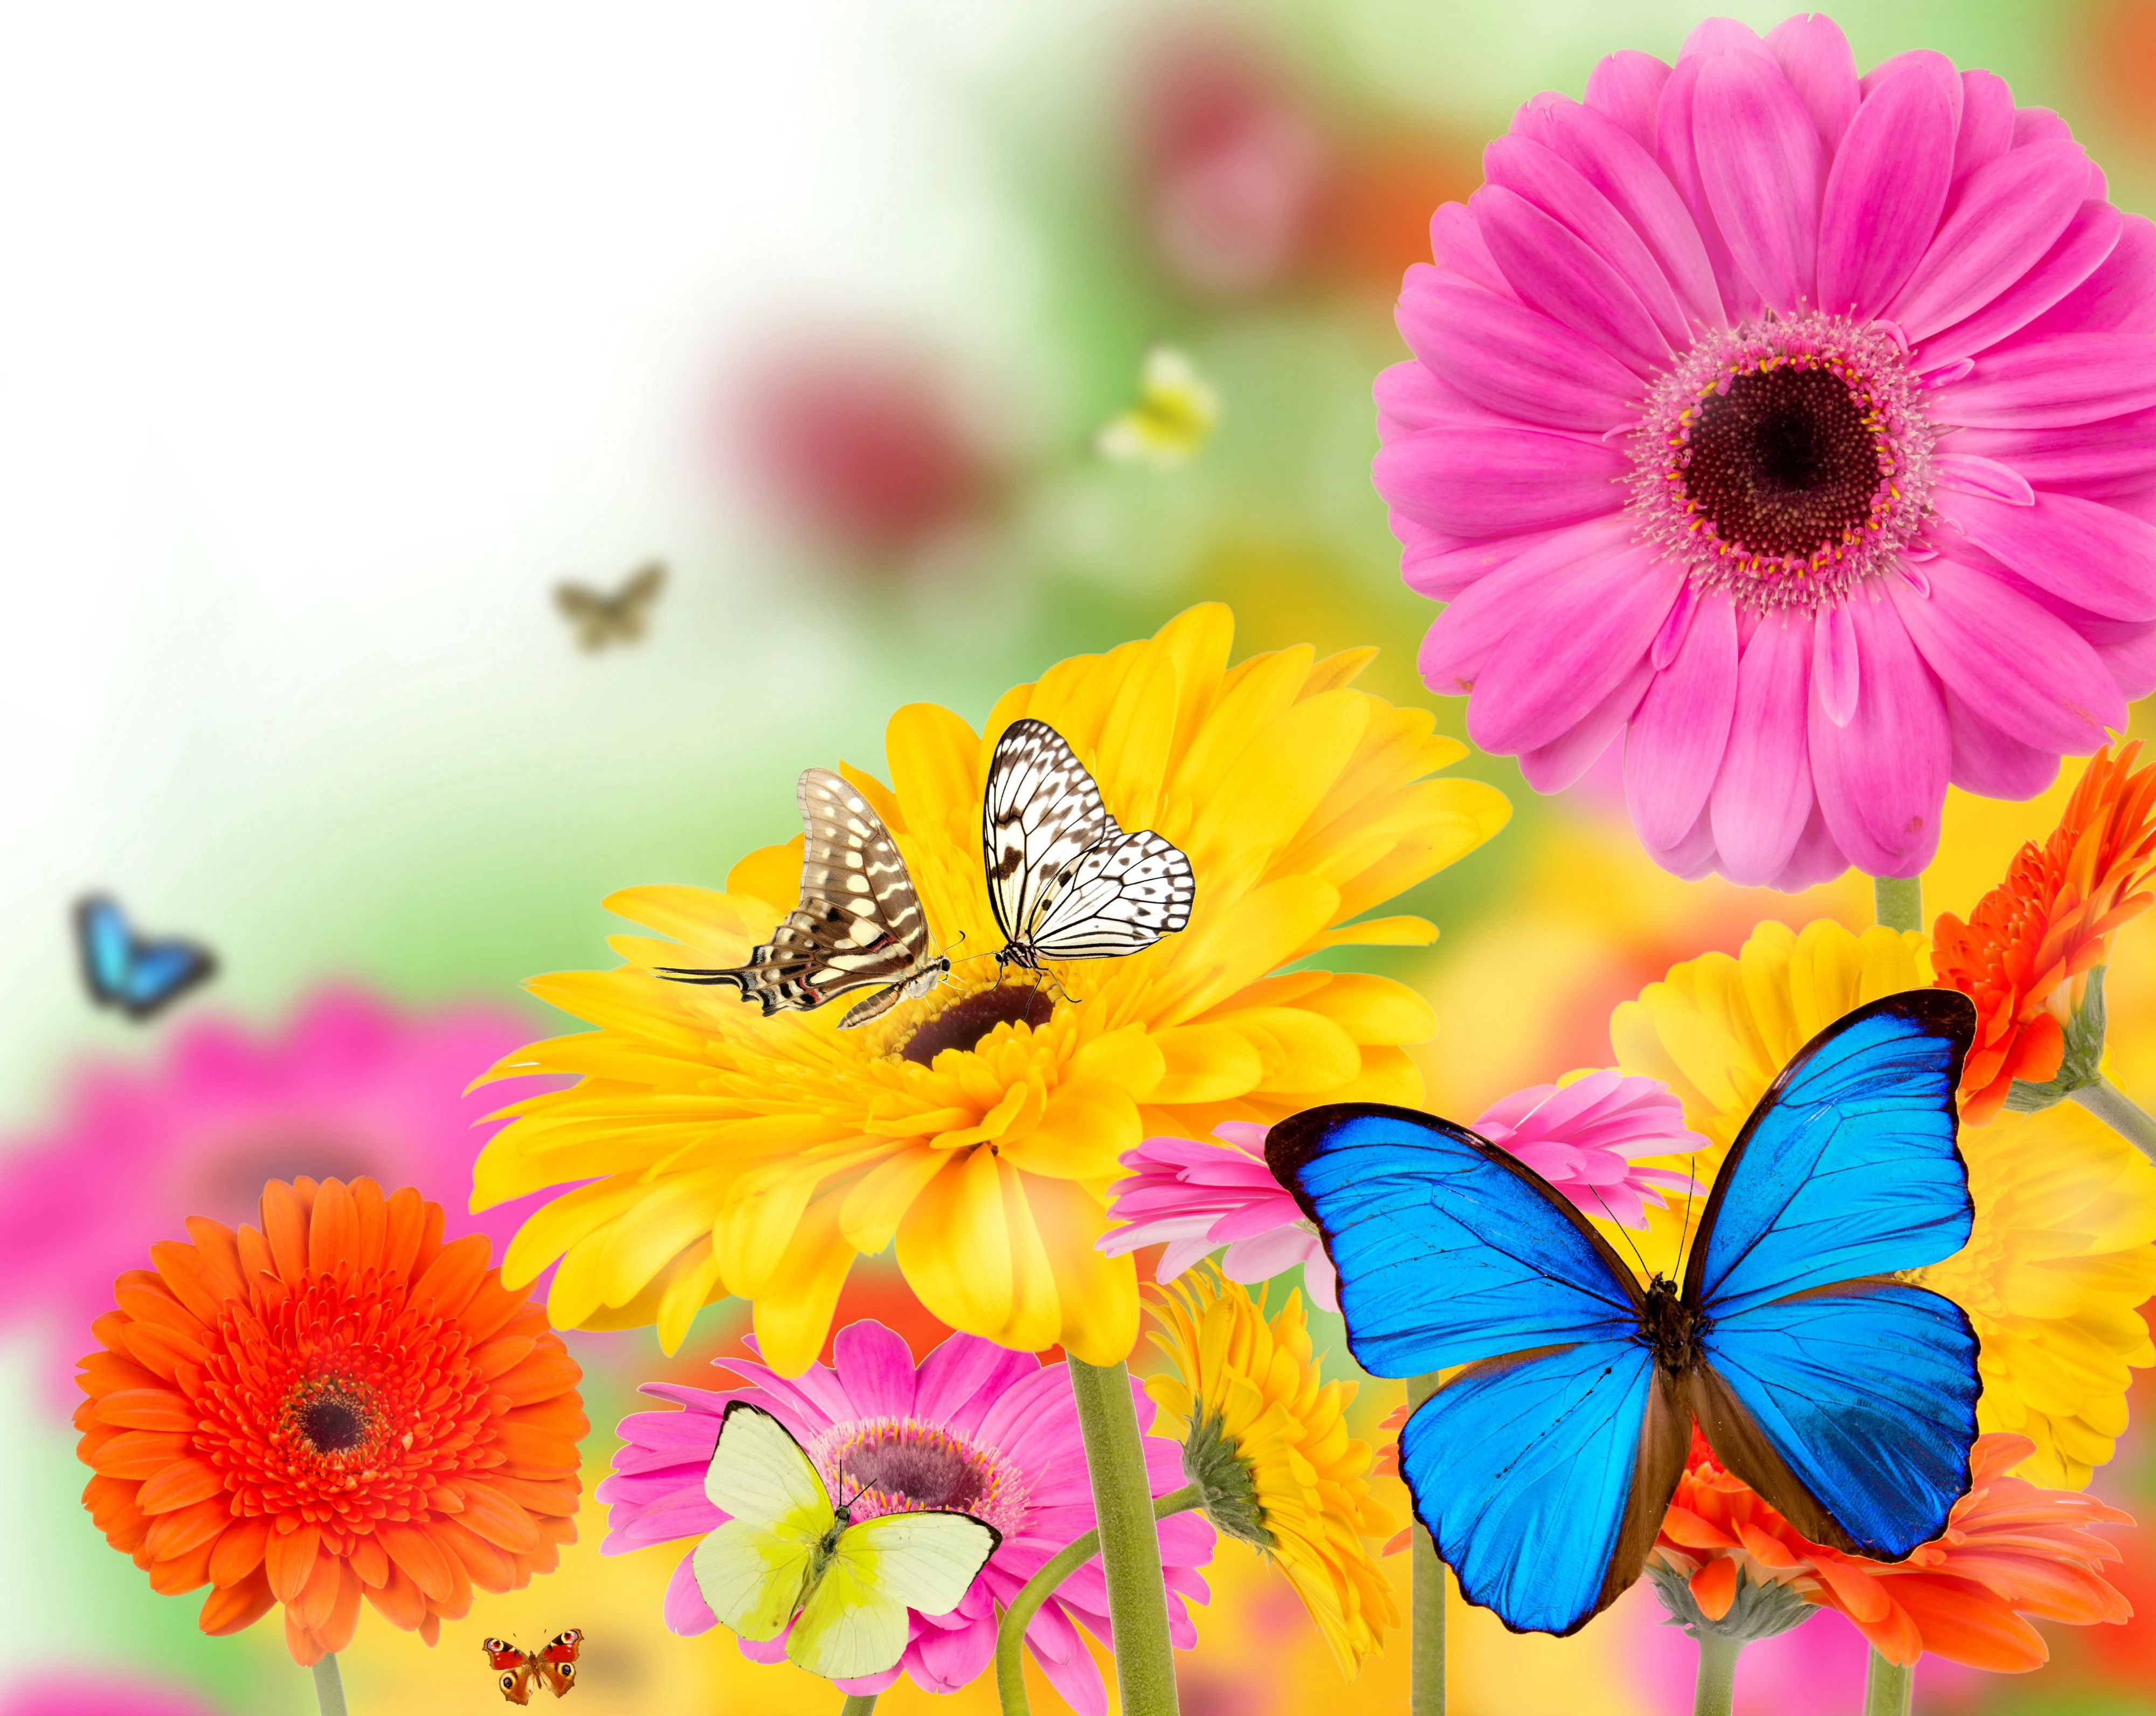 FunMozar Spring Flowers And Butterflies Wallpapers 4000x3183